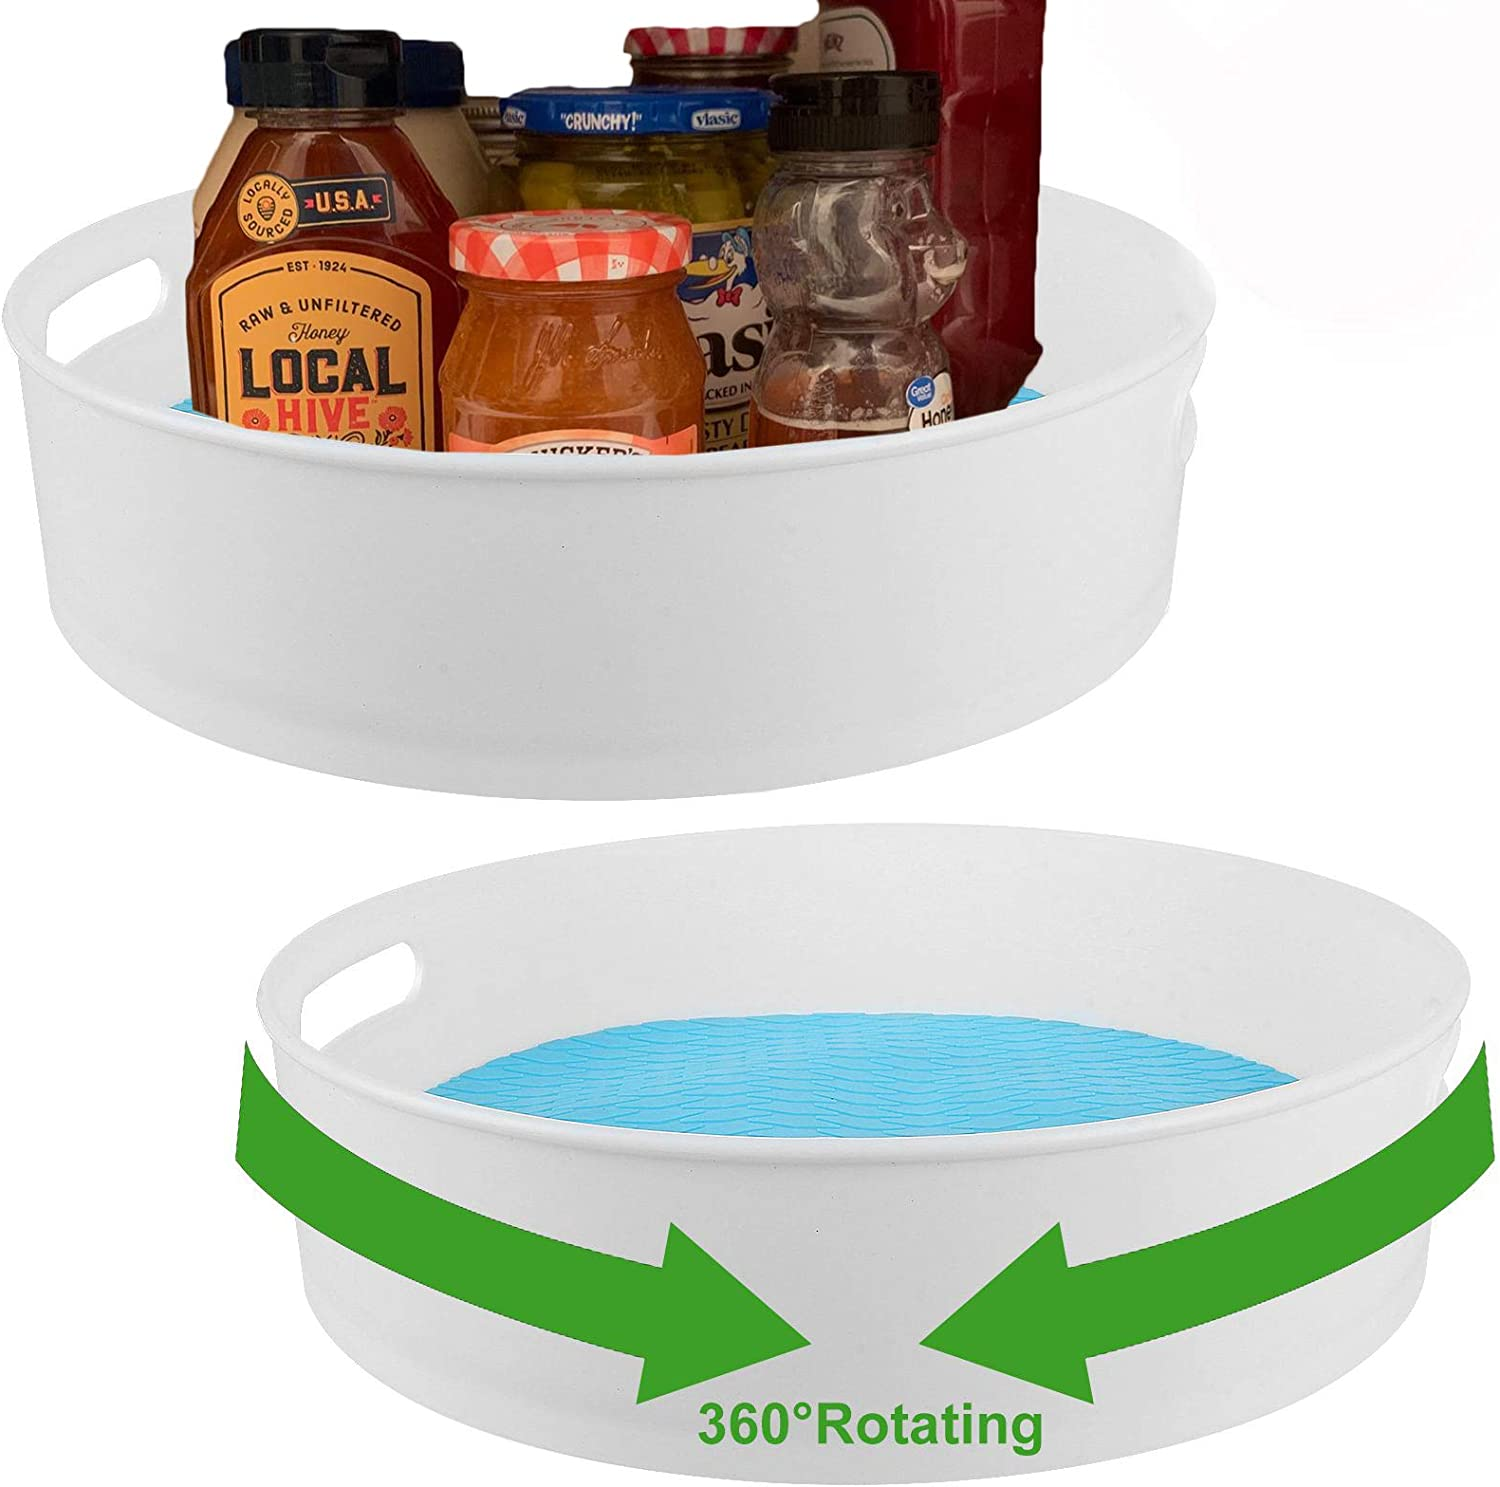 "2 Pack Plastic Lazy Susan Kitchen Organizer with Handle, 12"" Turntable Cabinet Food Storage Bin, Turntable Storage Organizer for Pantry, Cabinet, Dresser, Refrigerator, White Rotating Cosmetic Tray"